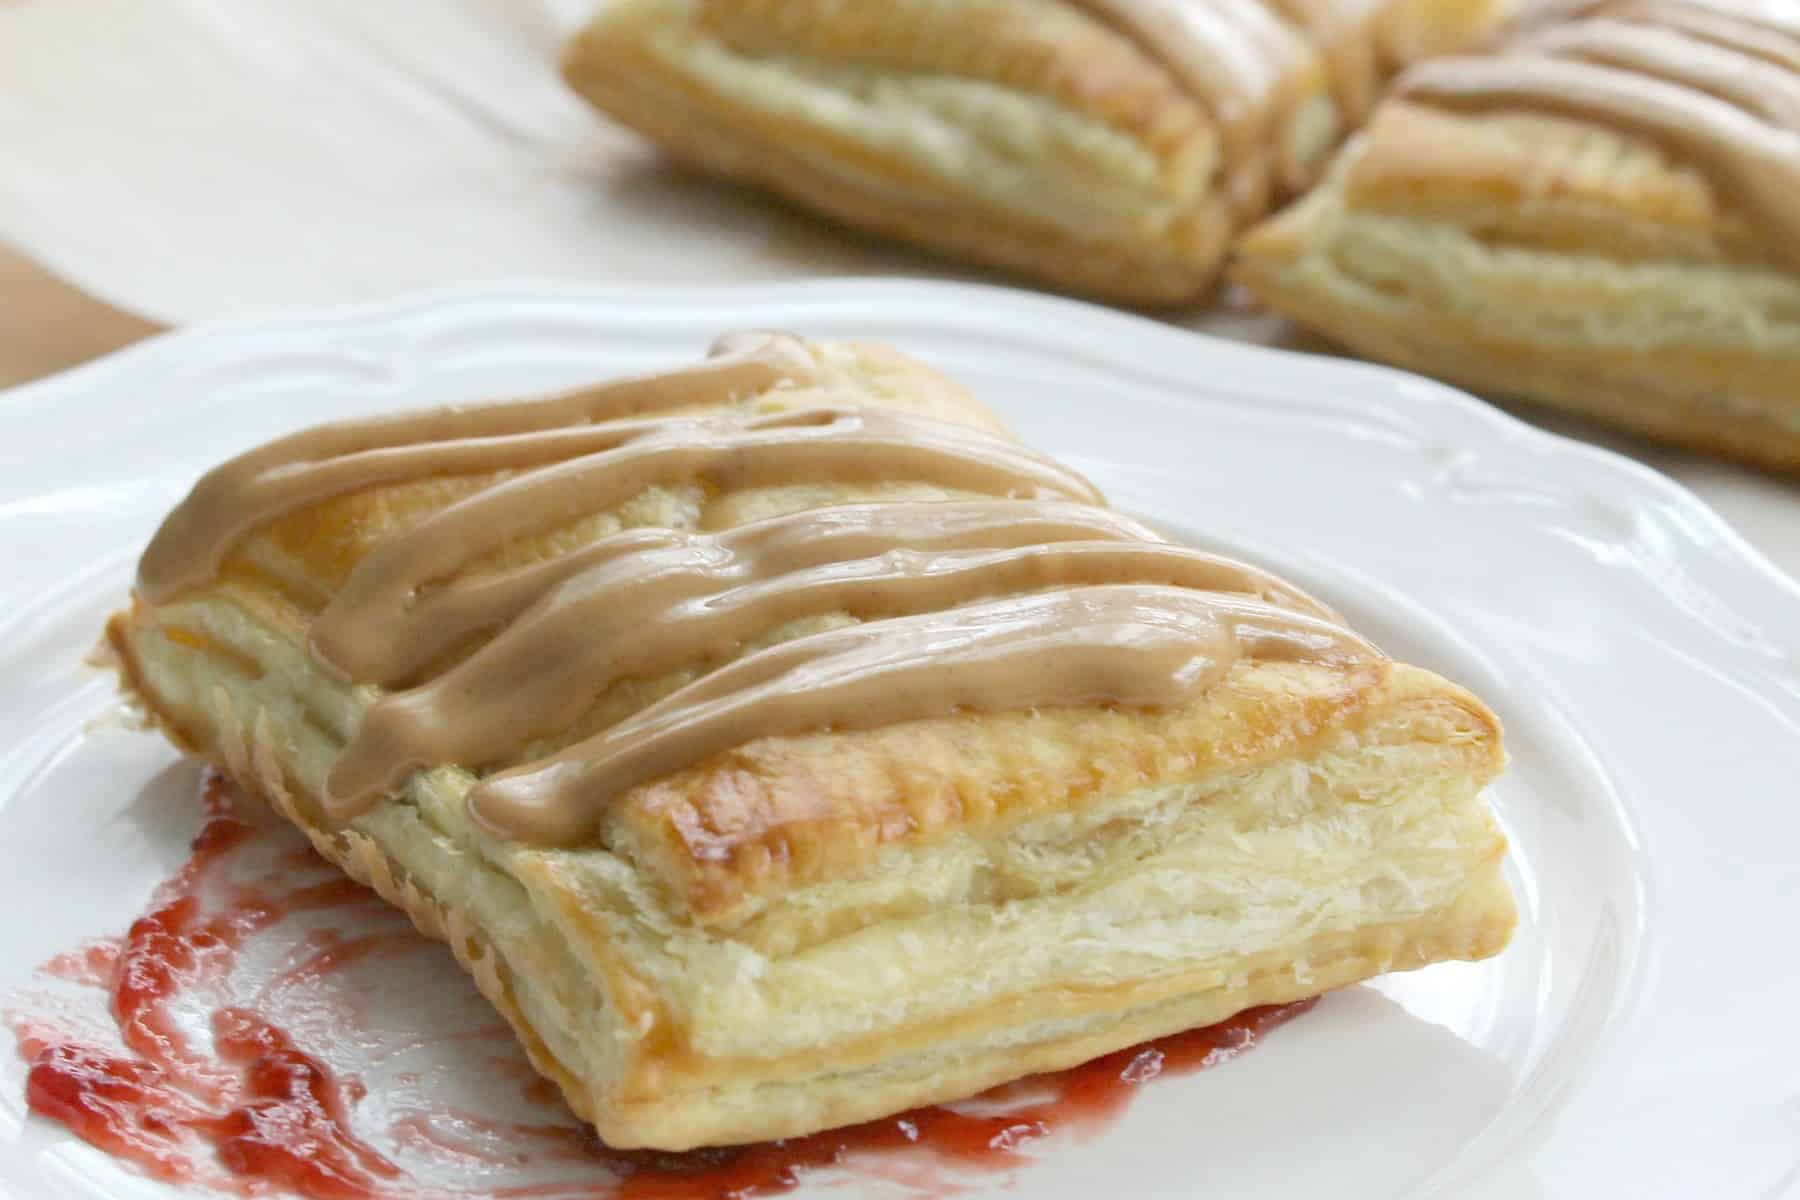 ... to hop on over to see the Peanut Butter and Jelly Pop Tarts Recipe